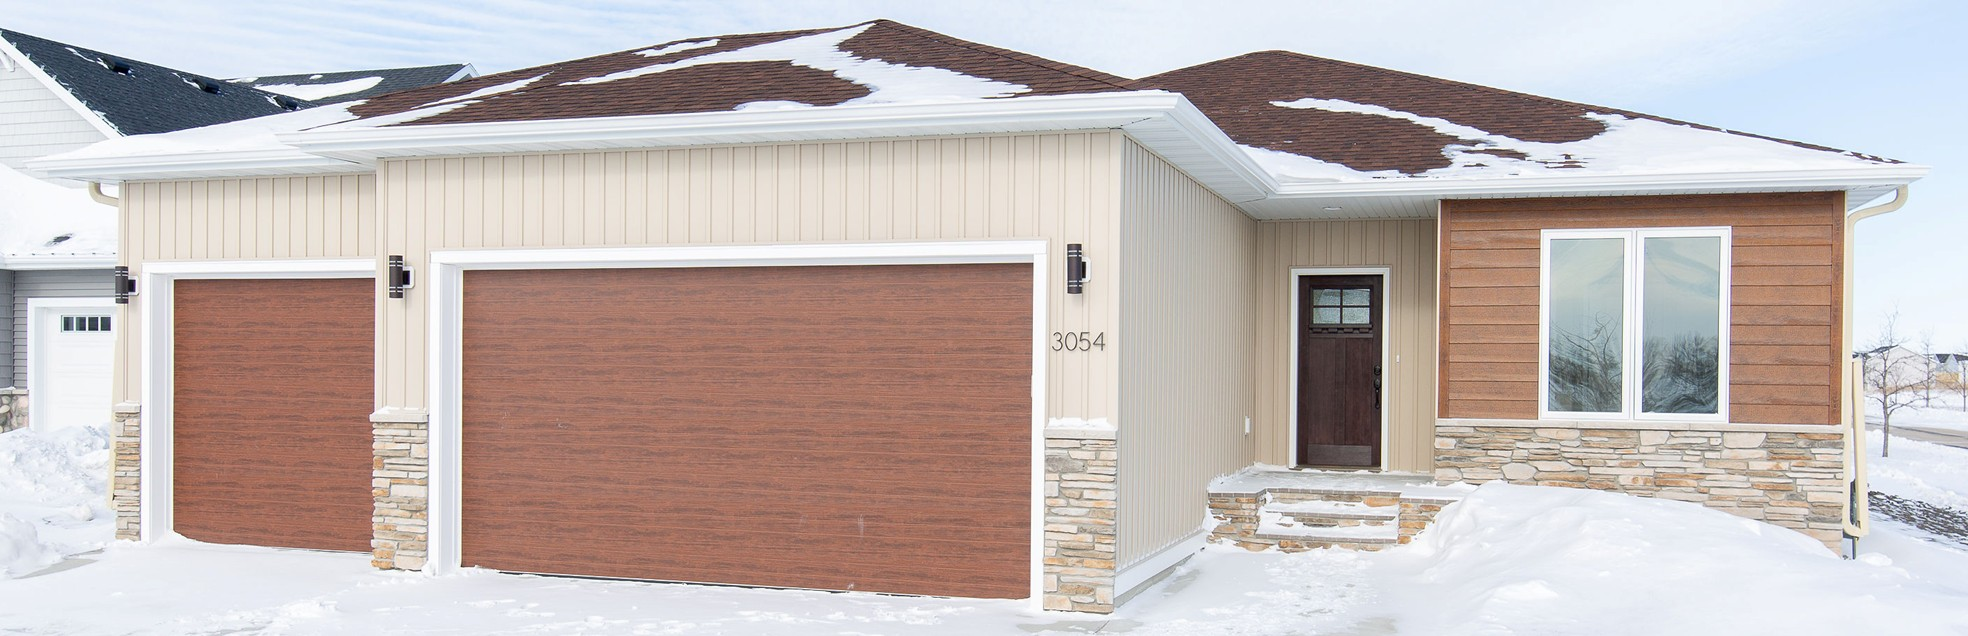 Fargo moorhead home builder construction company great for Fargo nd home builders